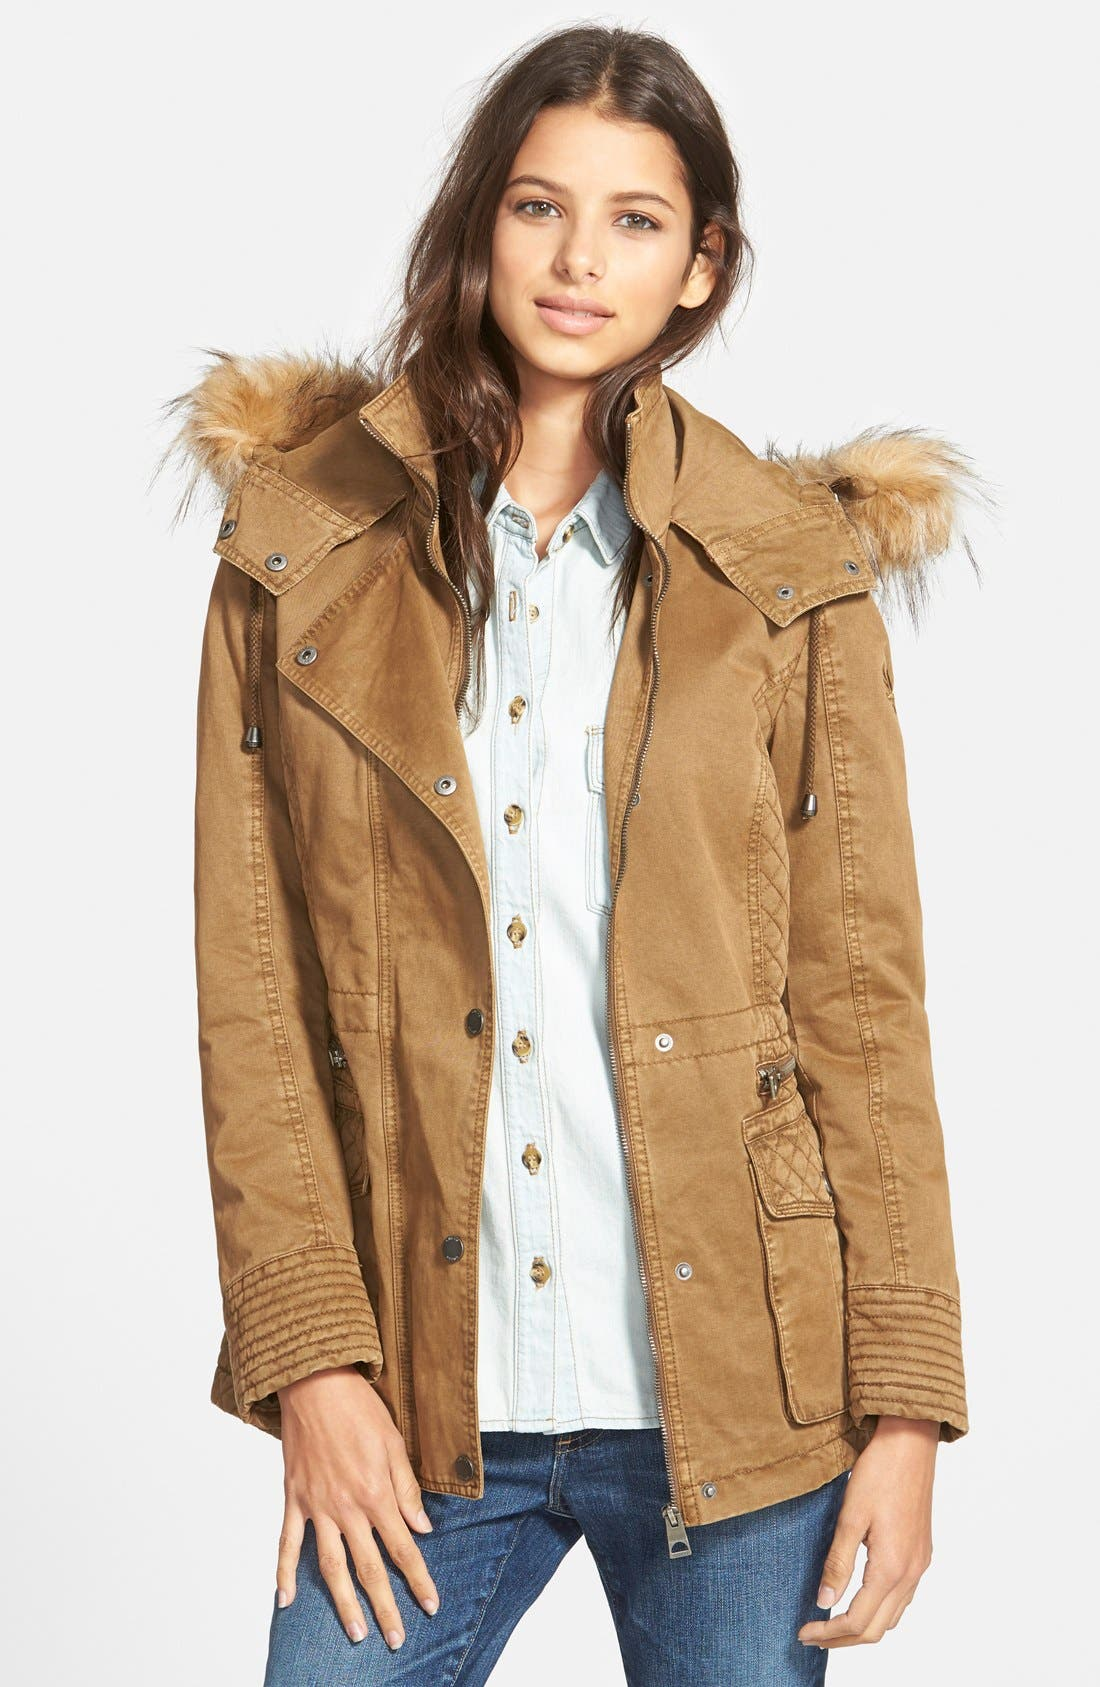 Alternate Image 1 Selected - GUESS Hooded Cotton Field Jacket with Faux Fur Trim